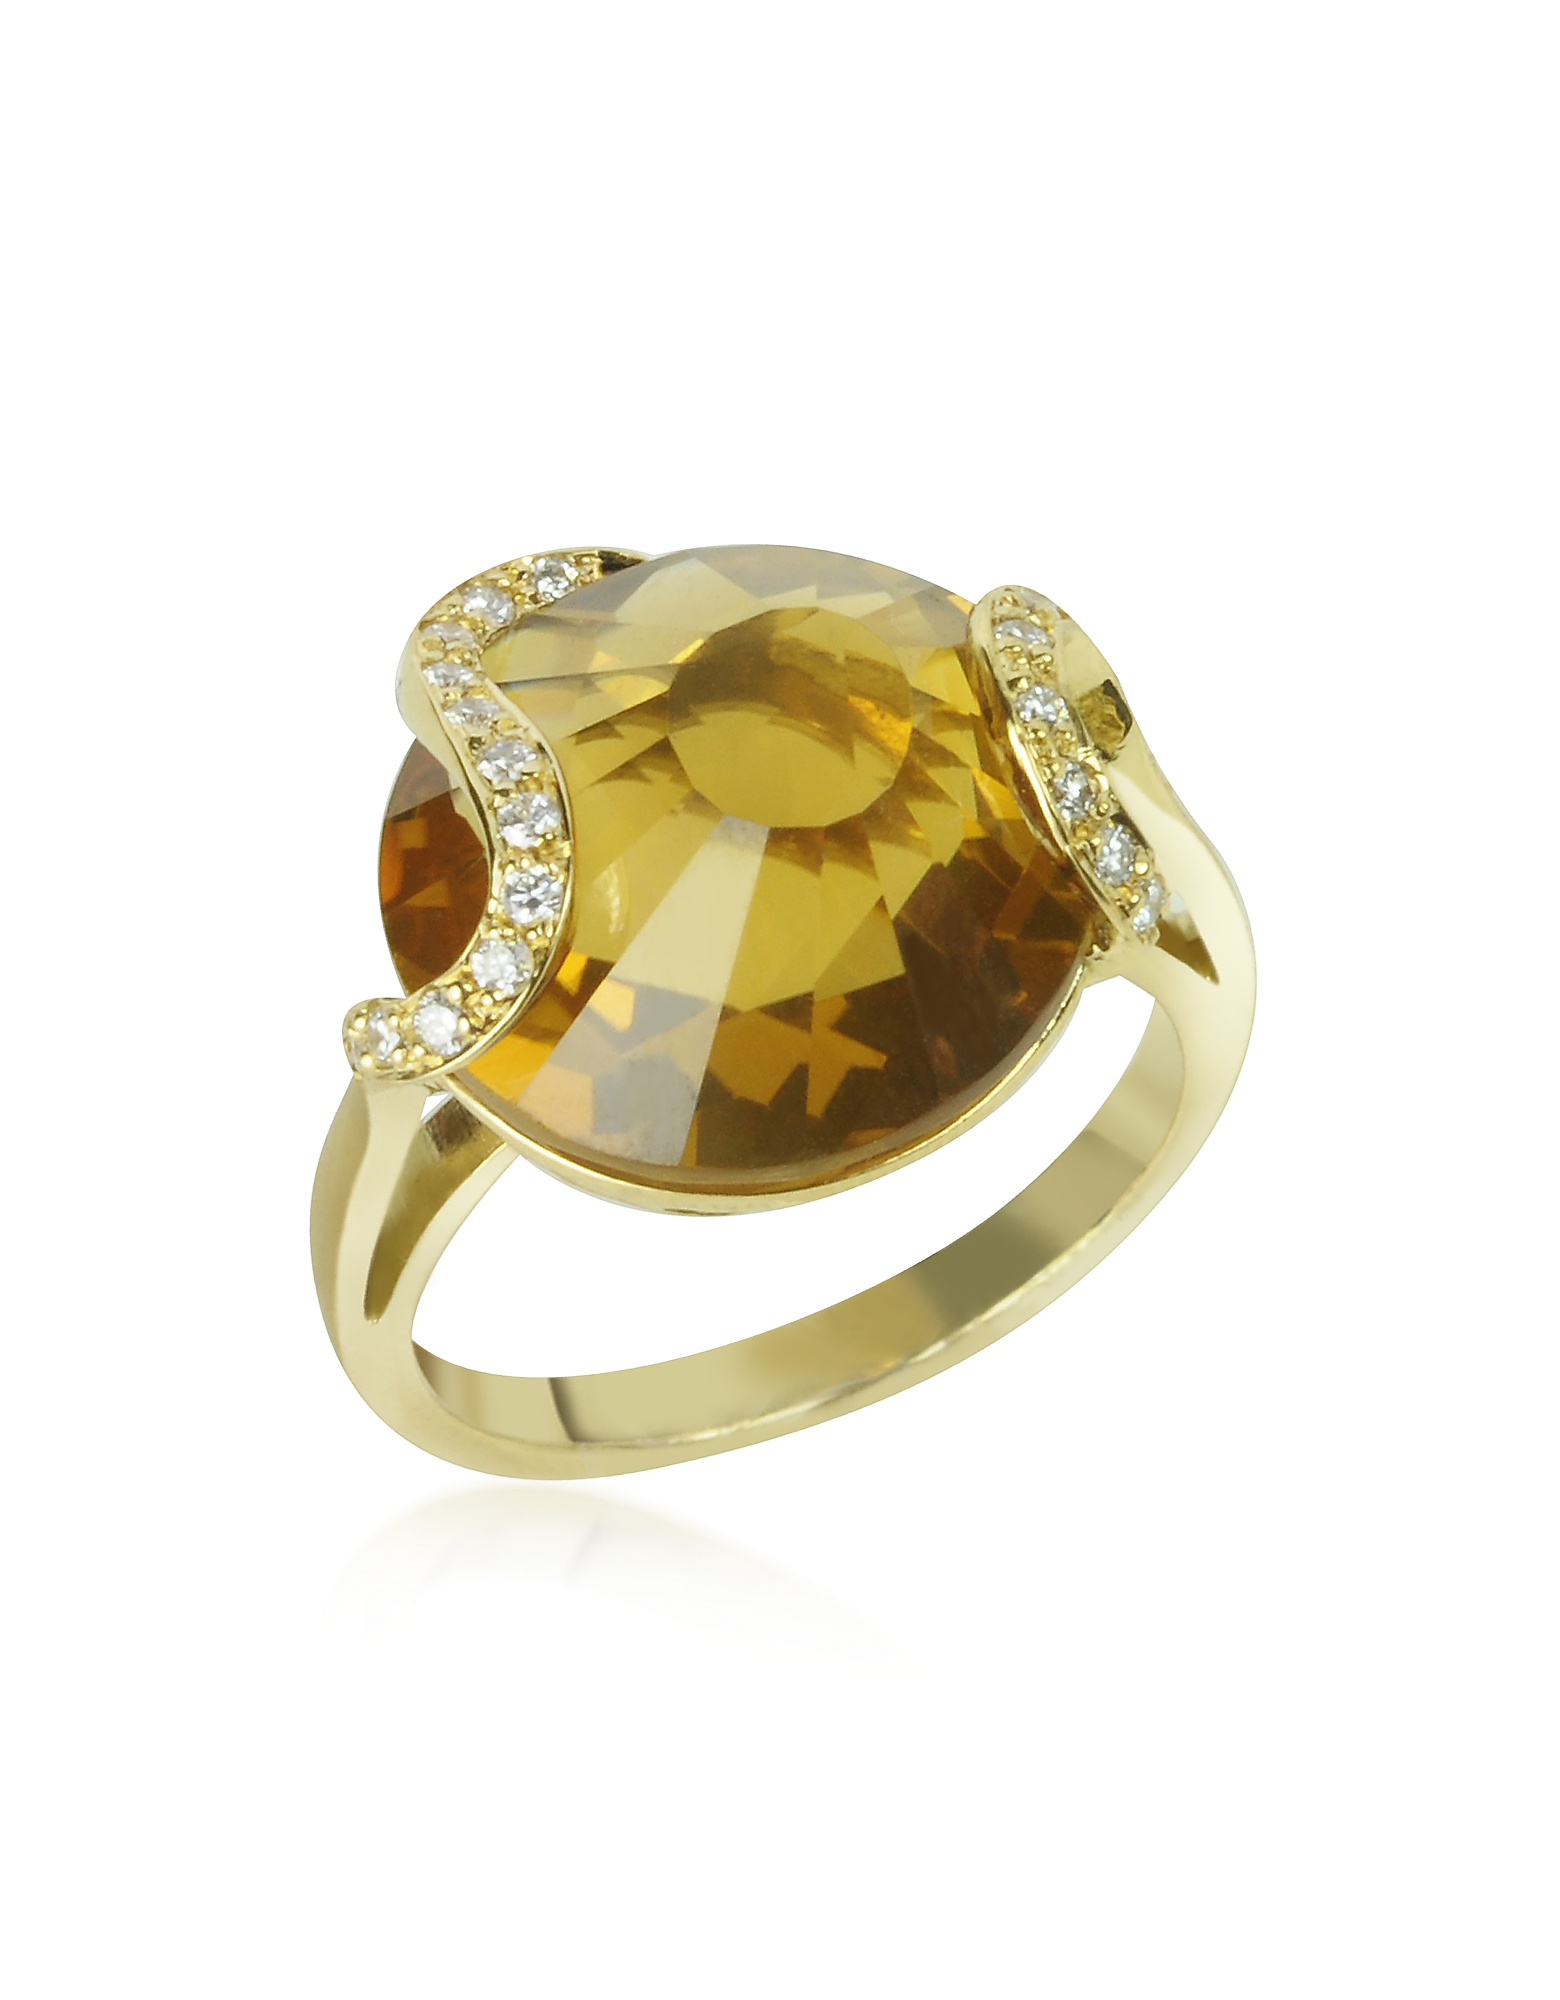 Incanto Royale Designer Rings, Citrine and Diamond 18K Gold Ring